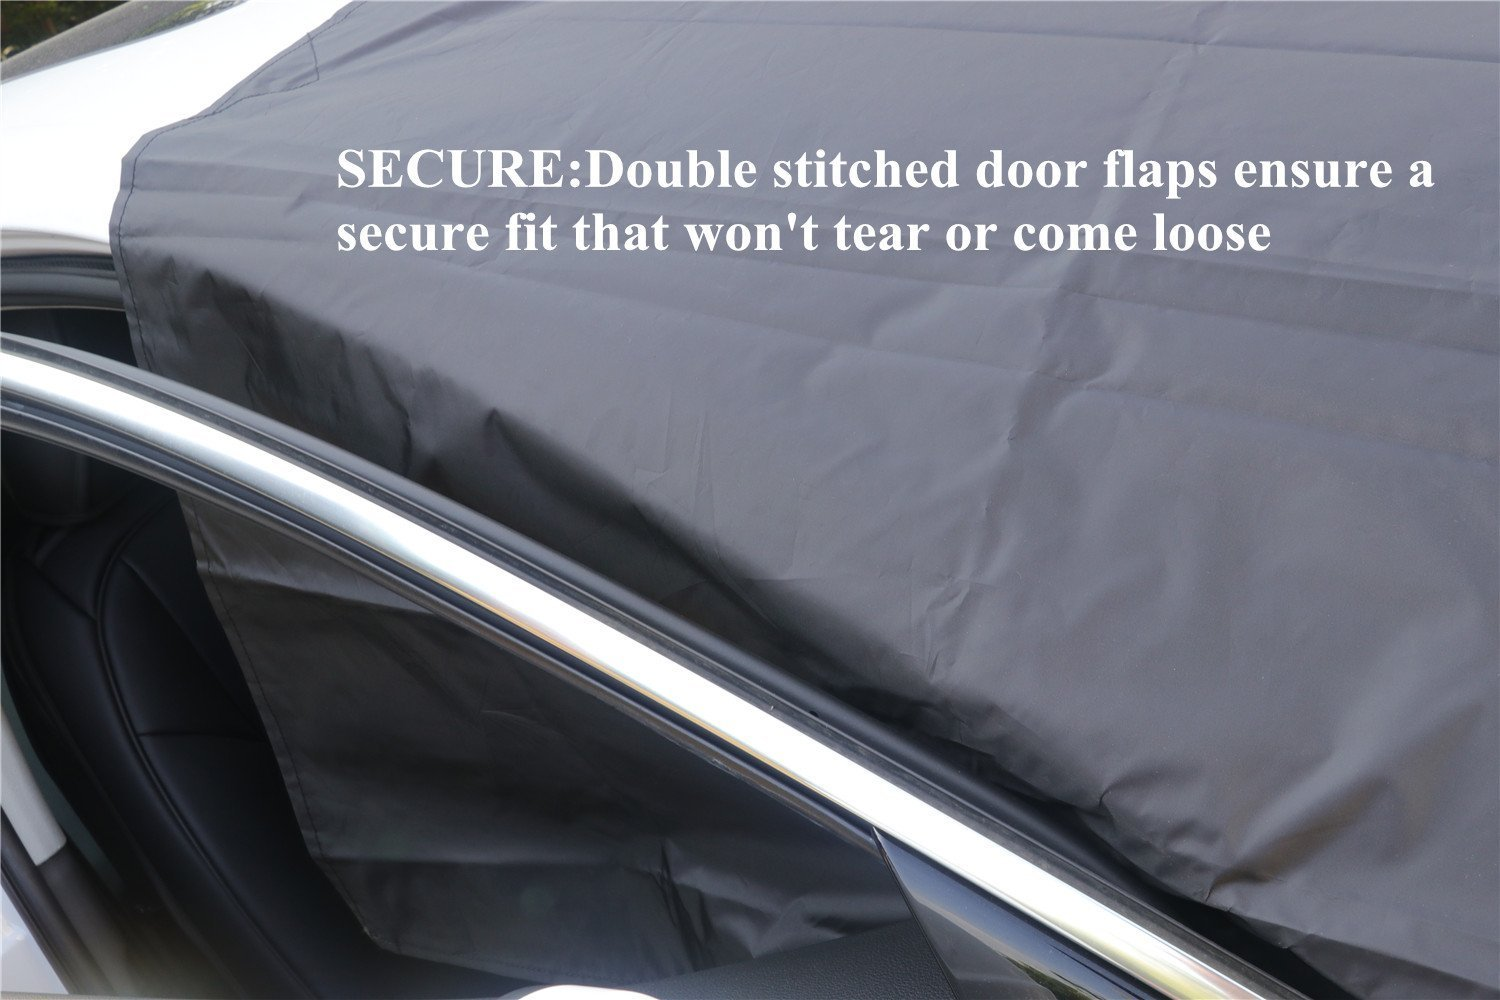 Magnetic Frost Guard Car Windproof Shield Windshield Snow Ice Cover With Mirror Protective Covers Double Side For Winter /& Summer Truck Large 84 X 49 Van Fits Most Vehicles SUV